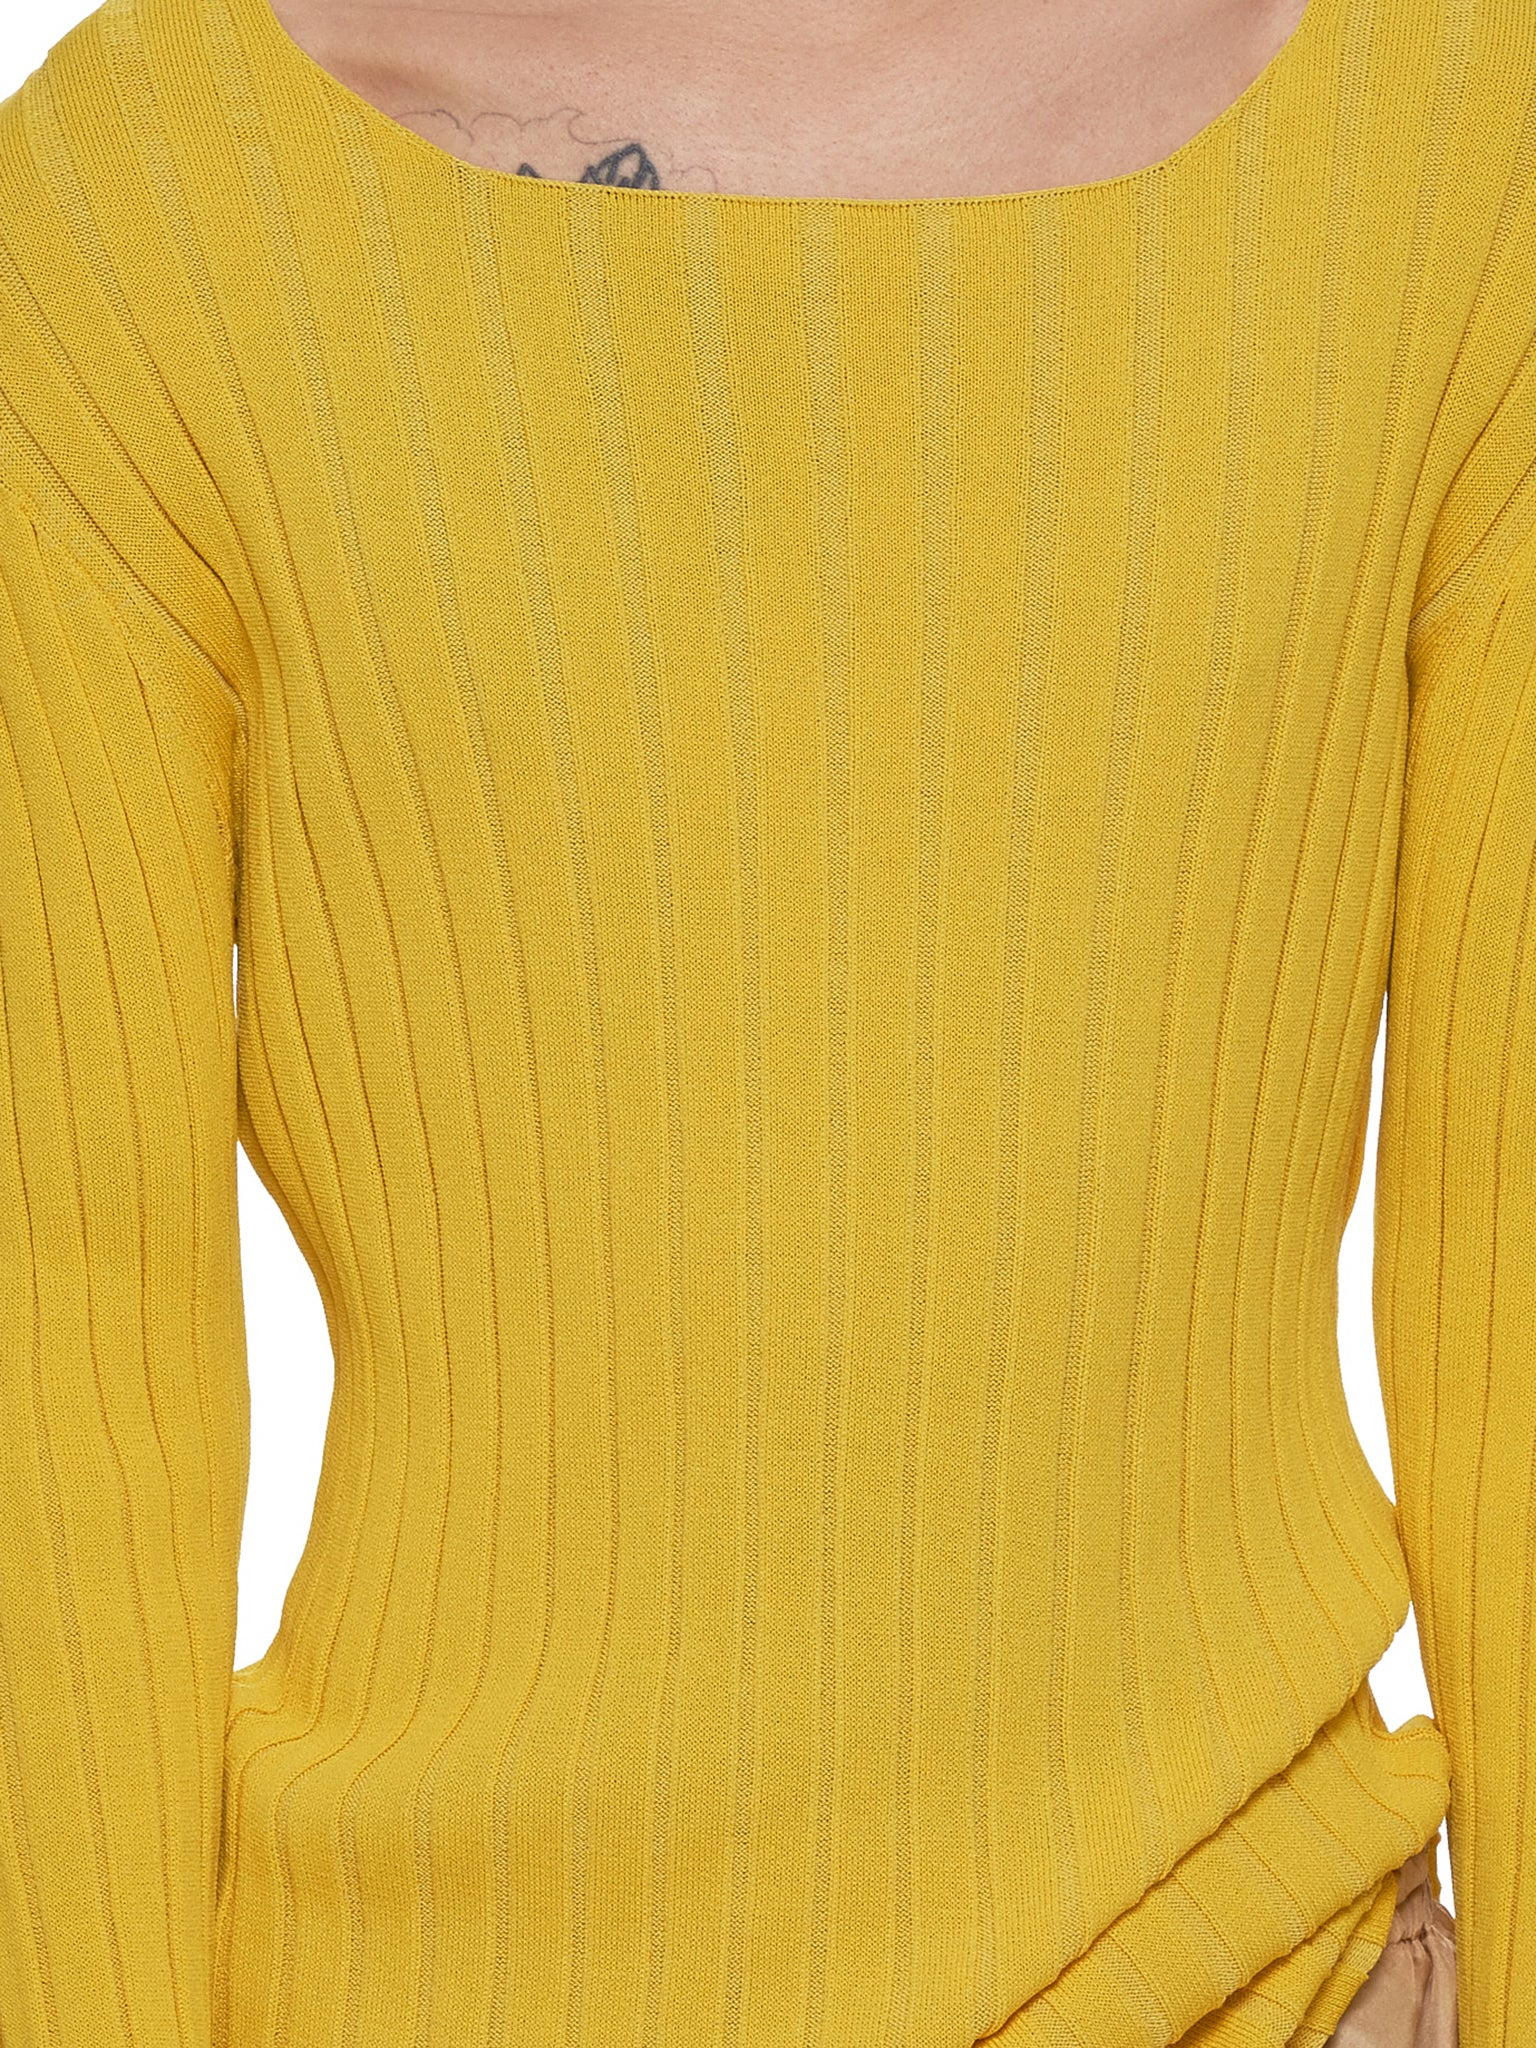 Ludovic de Saint Sernin Sweater - Hlorenzo Detail 2